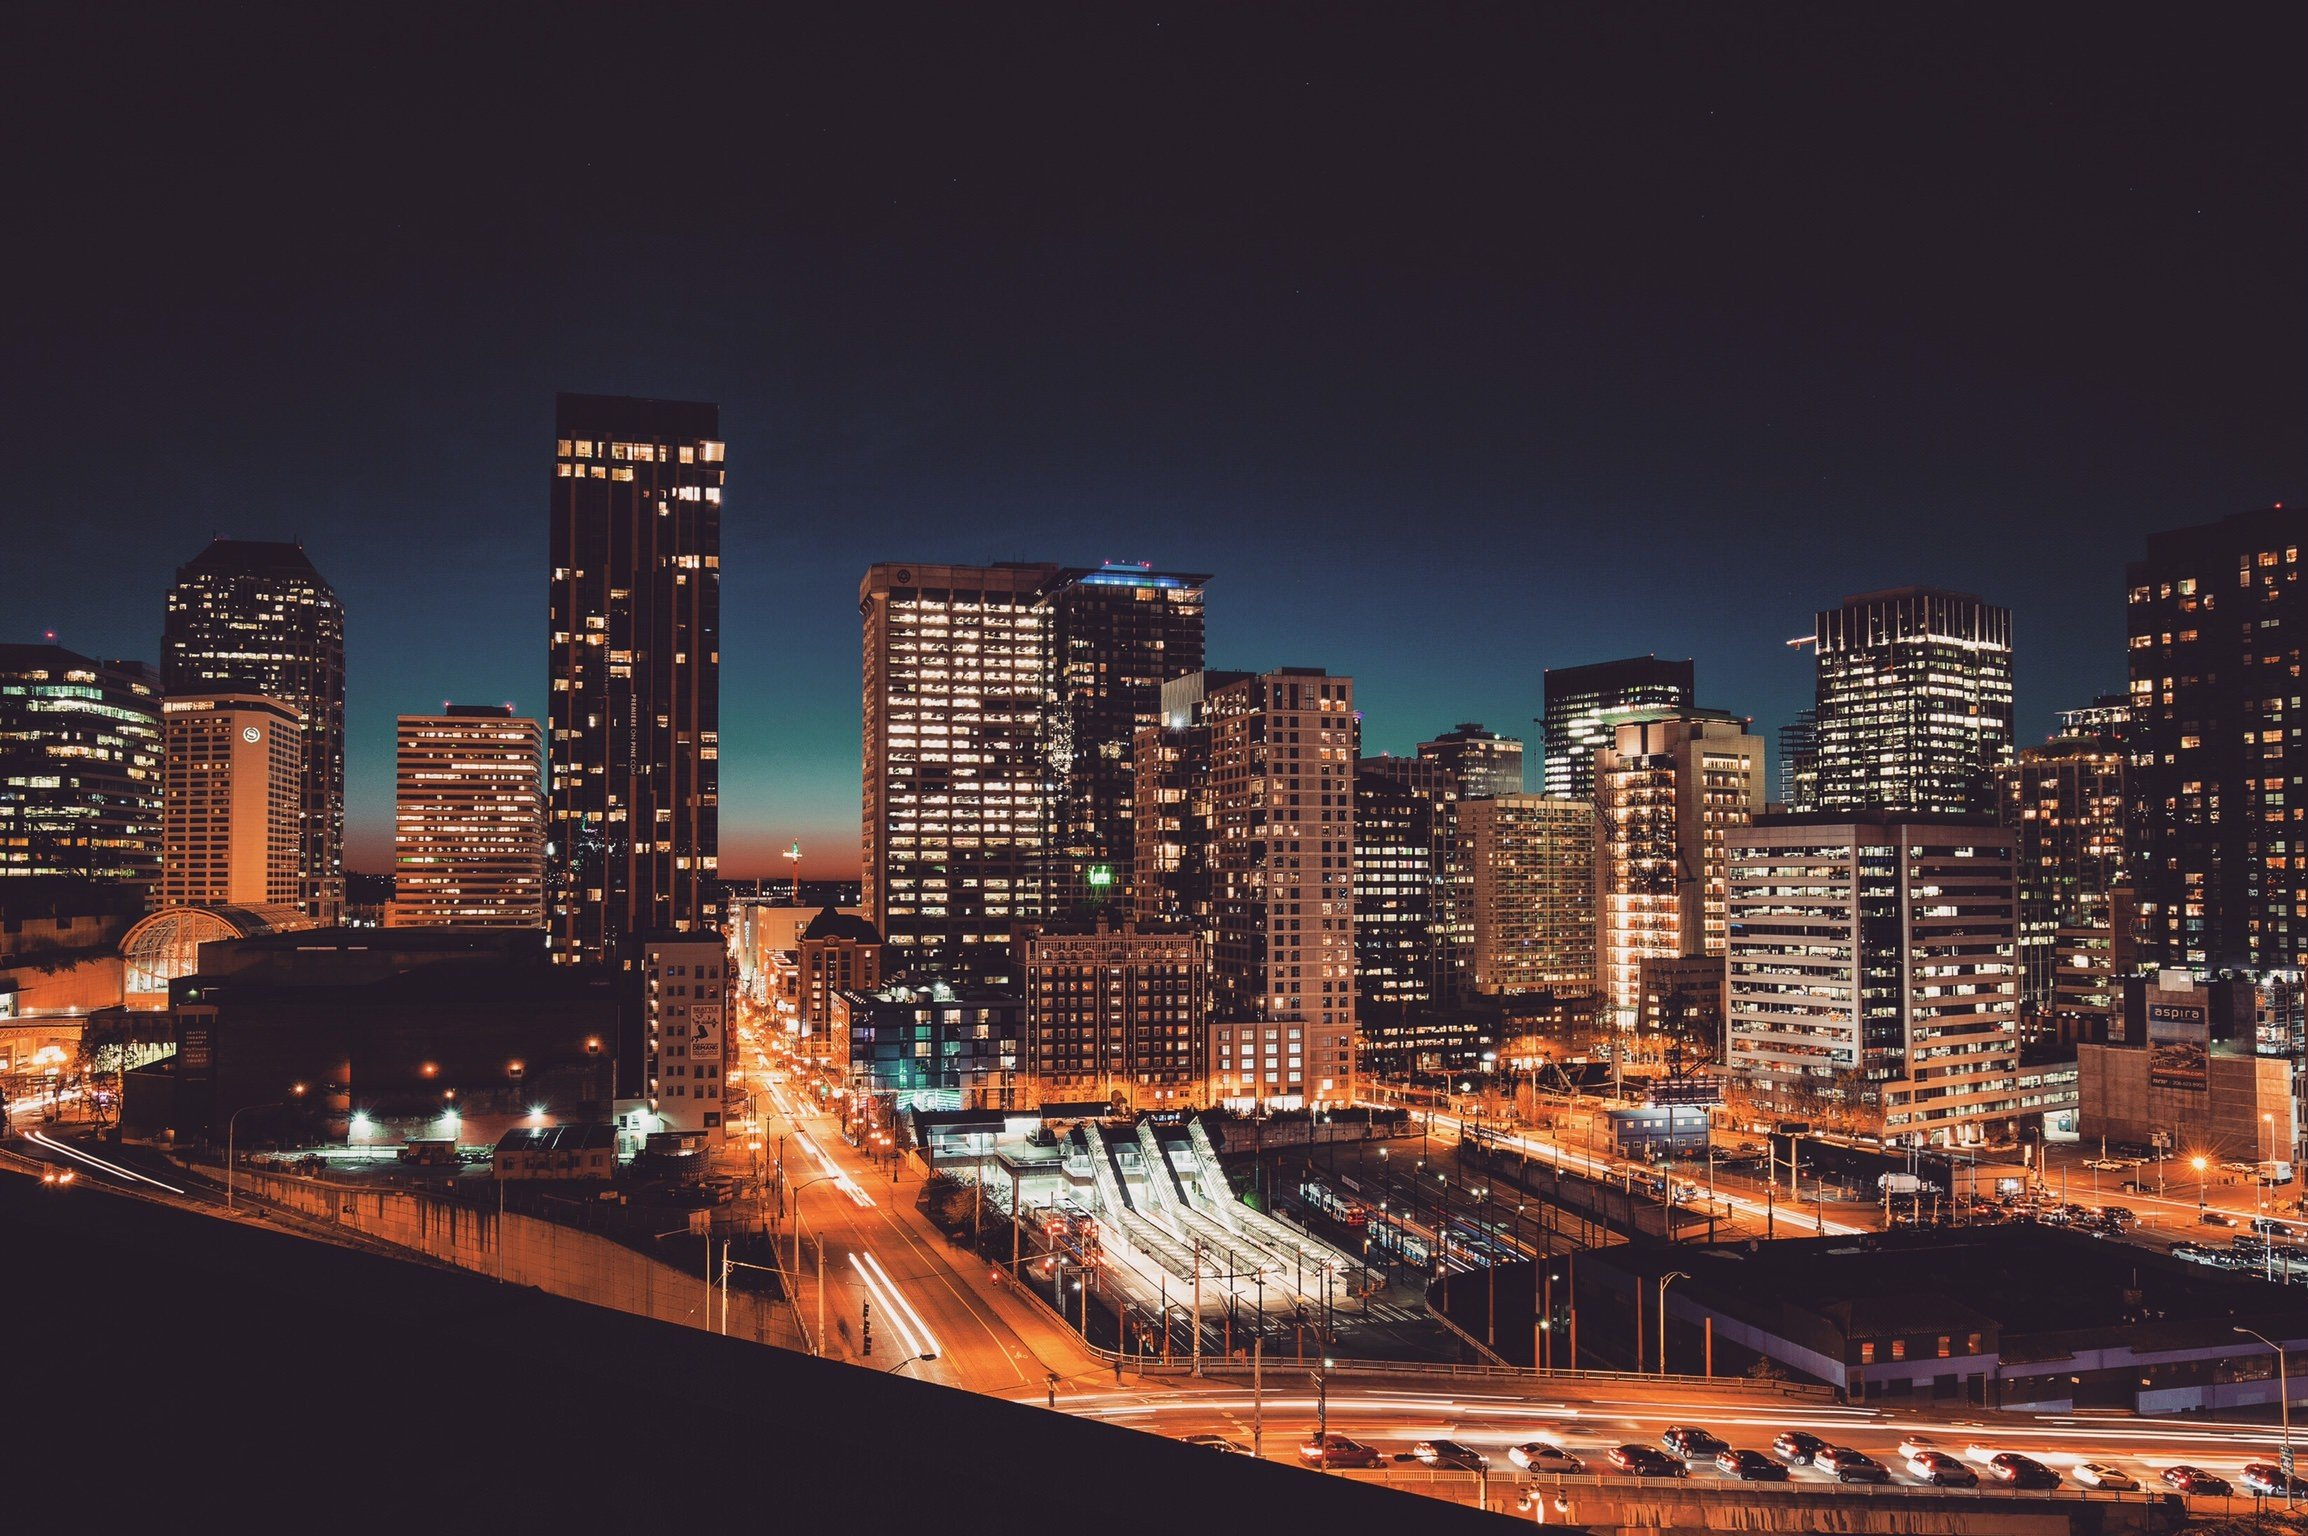 Photographing Cities At Night: City, Lights, Cityscape, Night HD Wallpapers / Desktop And